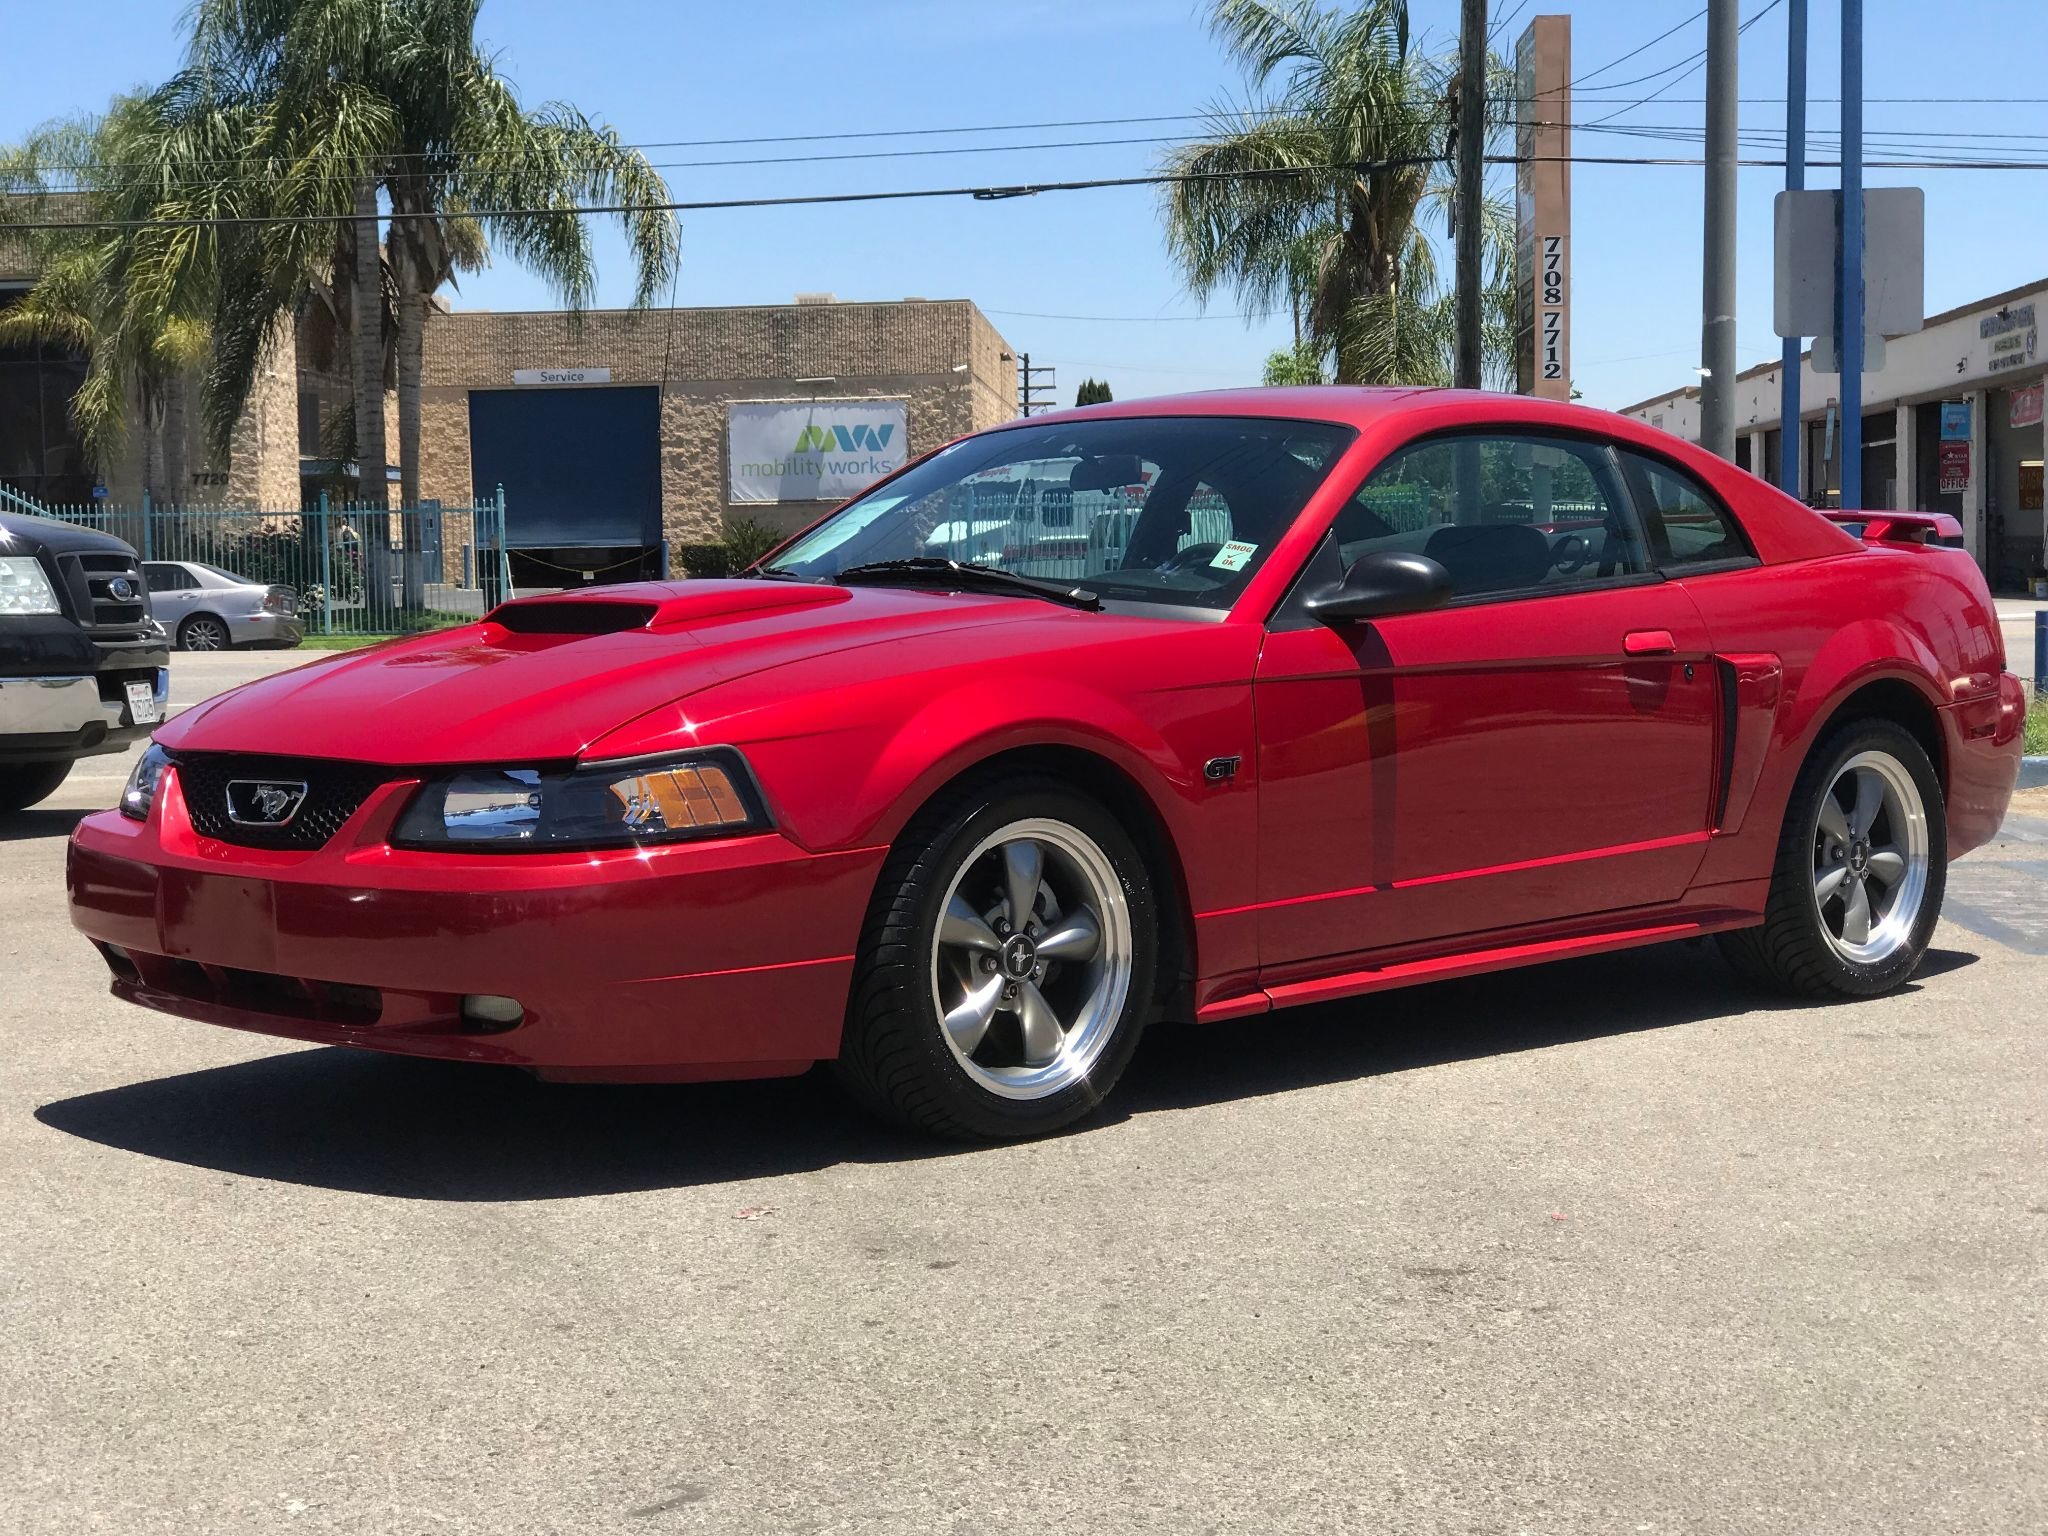 Used 2001 Ford Mustang Gt Premium At City Cars Warehouse Inc Fuel Filter